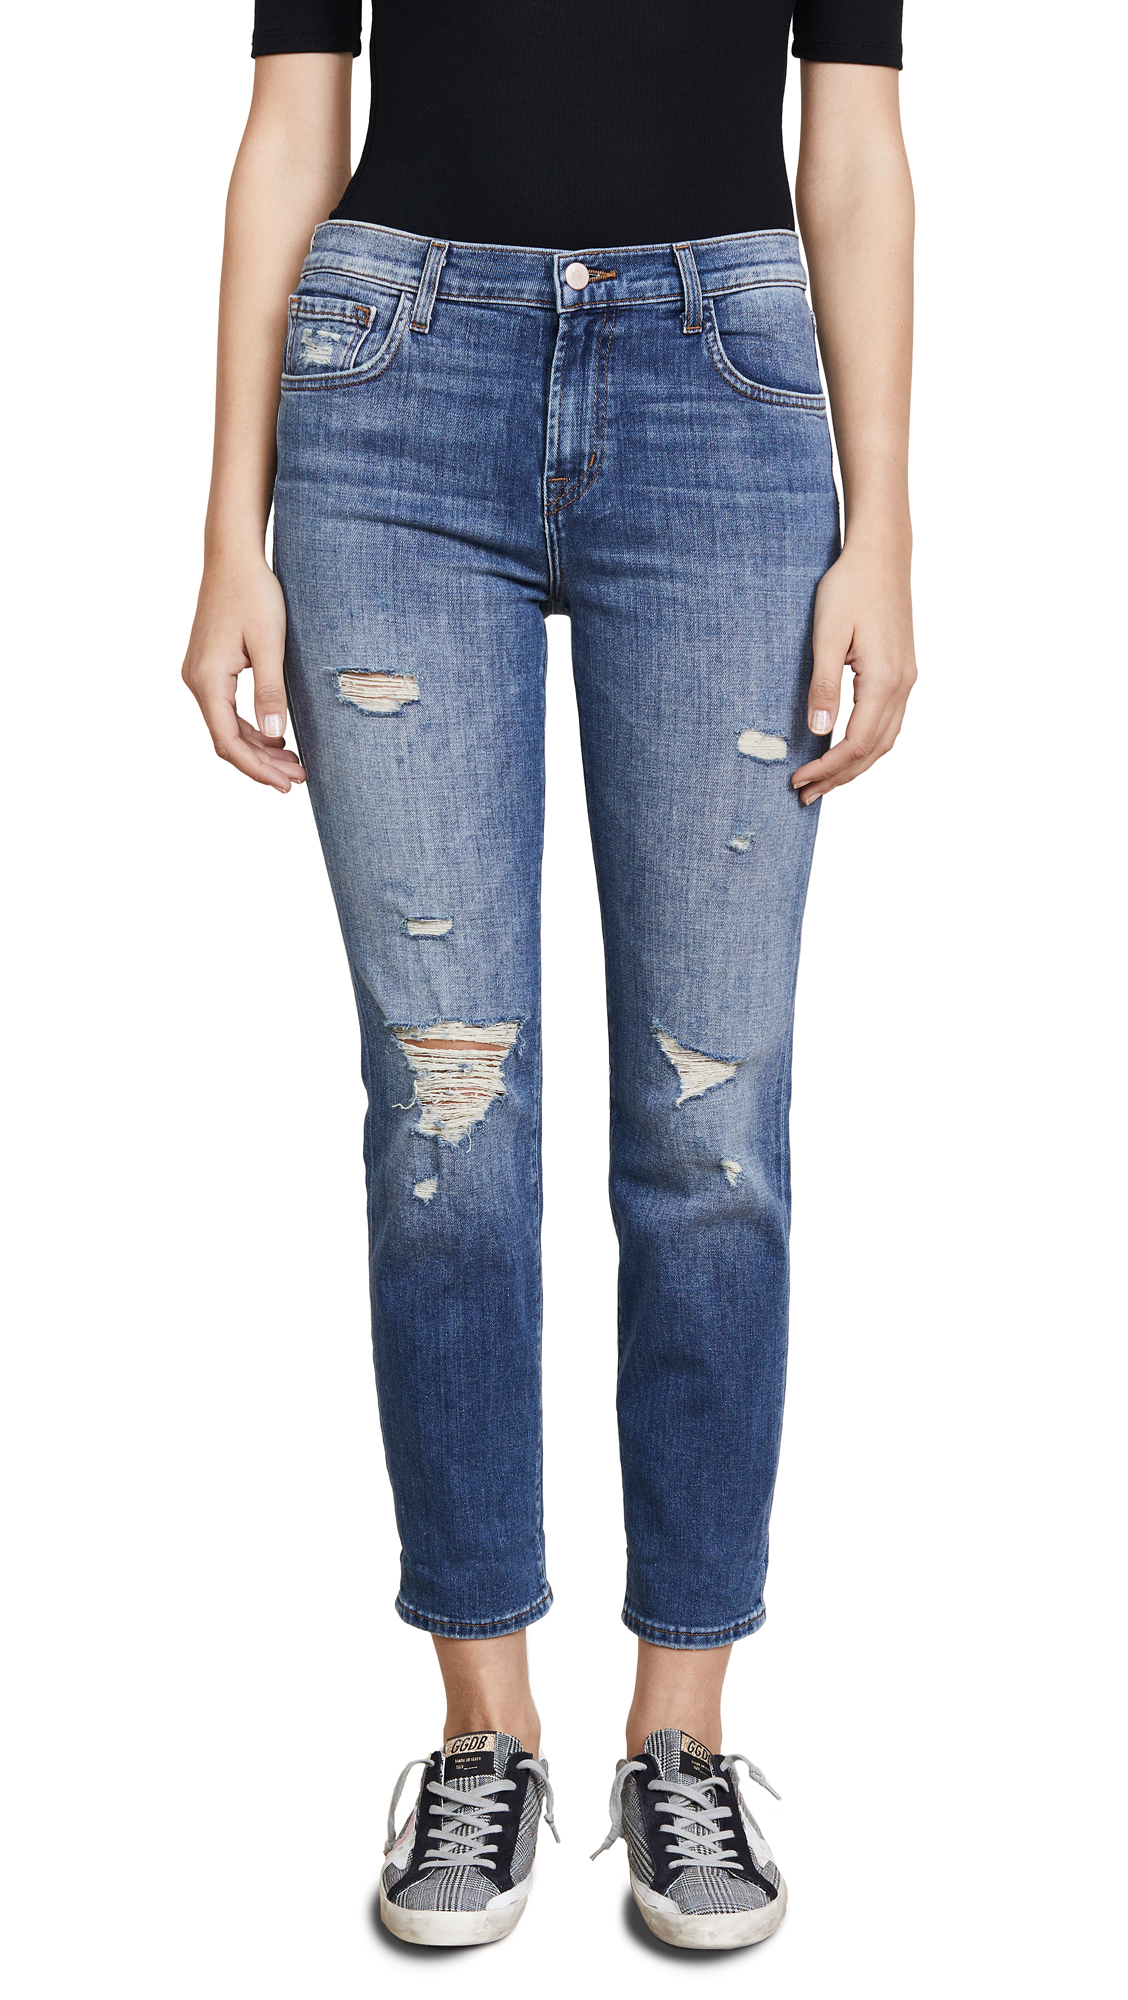 JOHNNY BOYFRIEND JEANS